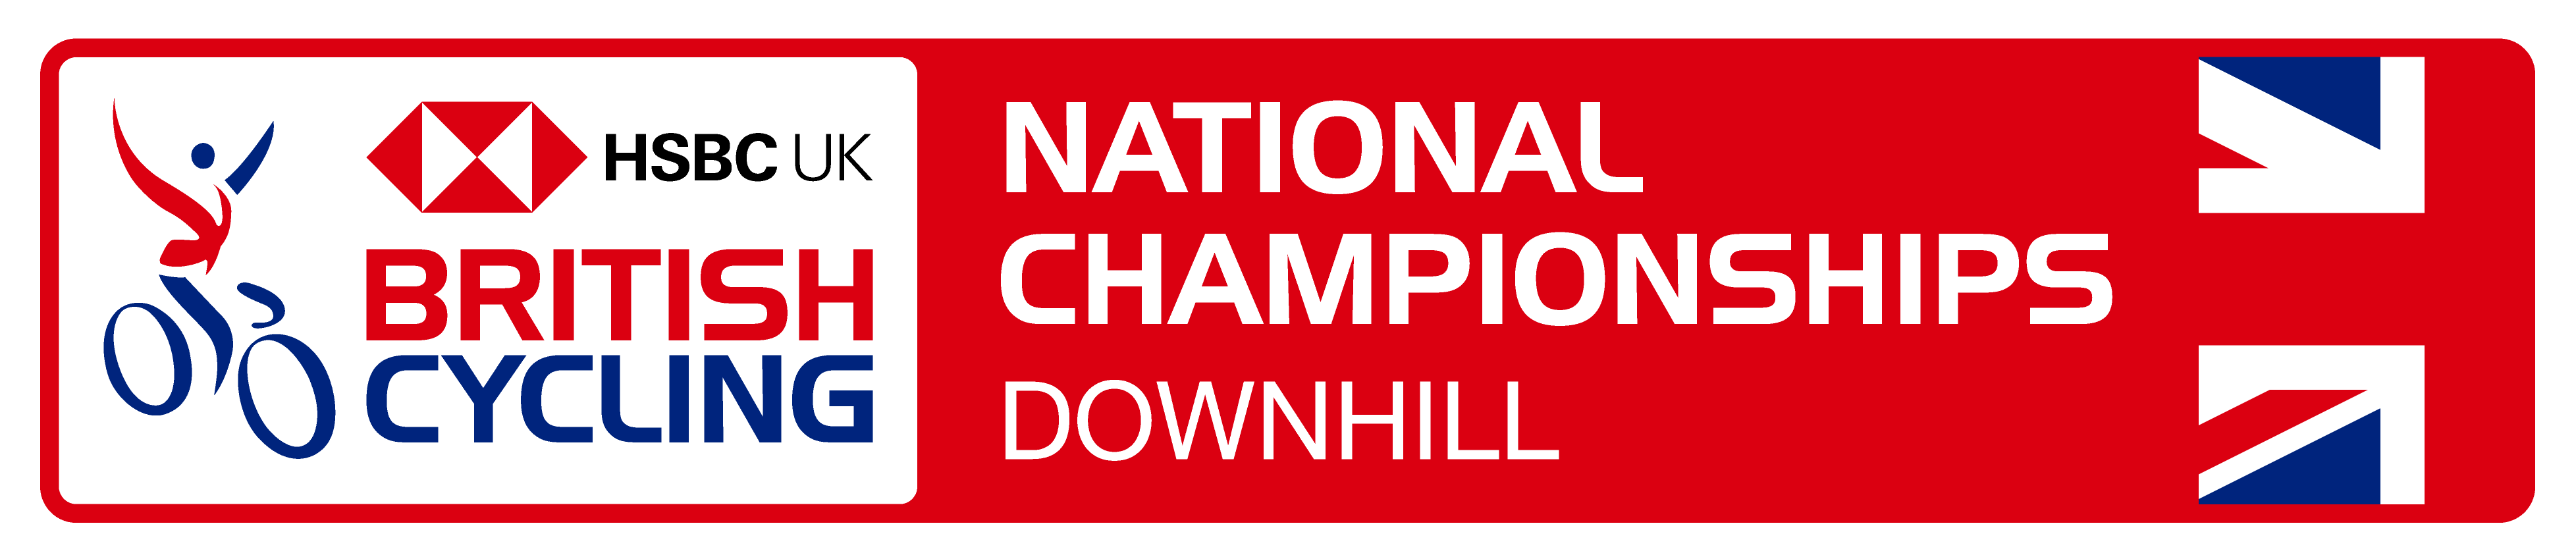 HSBC UK National Downhill Championships